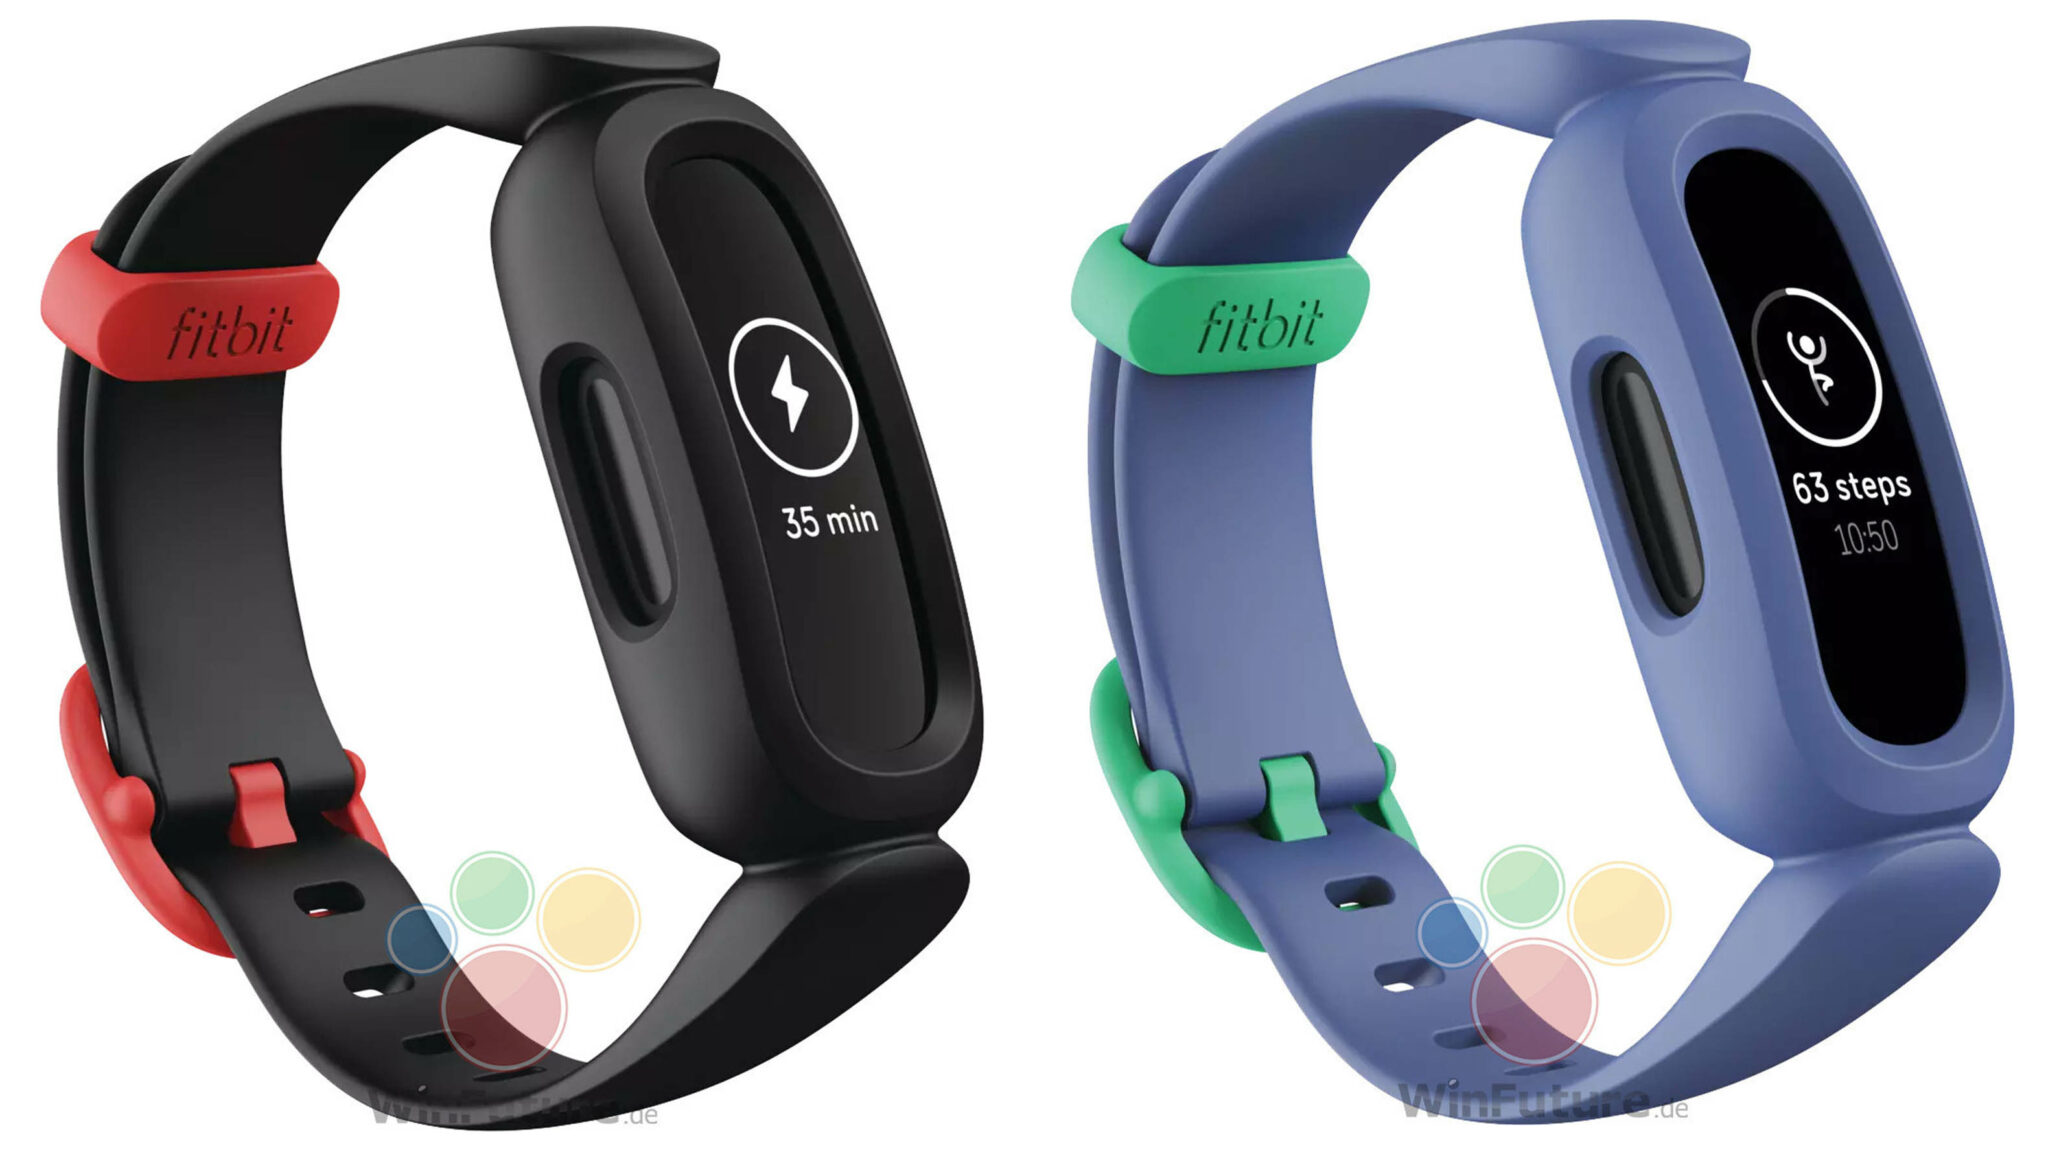 Leak reveals Fitbit Ace 3 fitness tracker for kids with refresh design